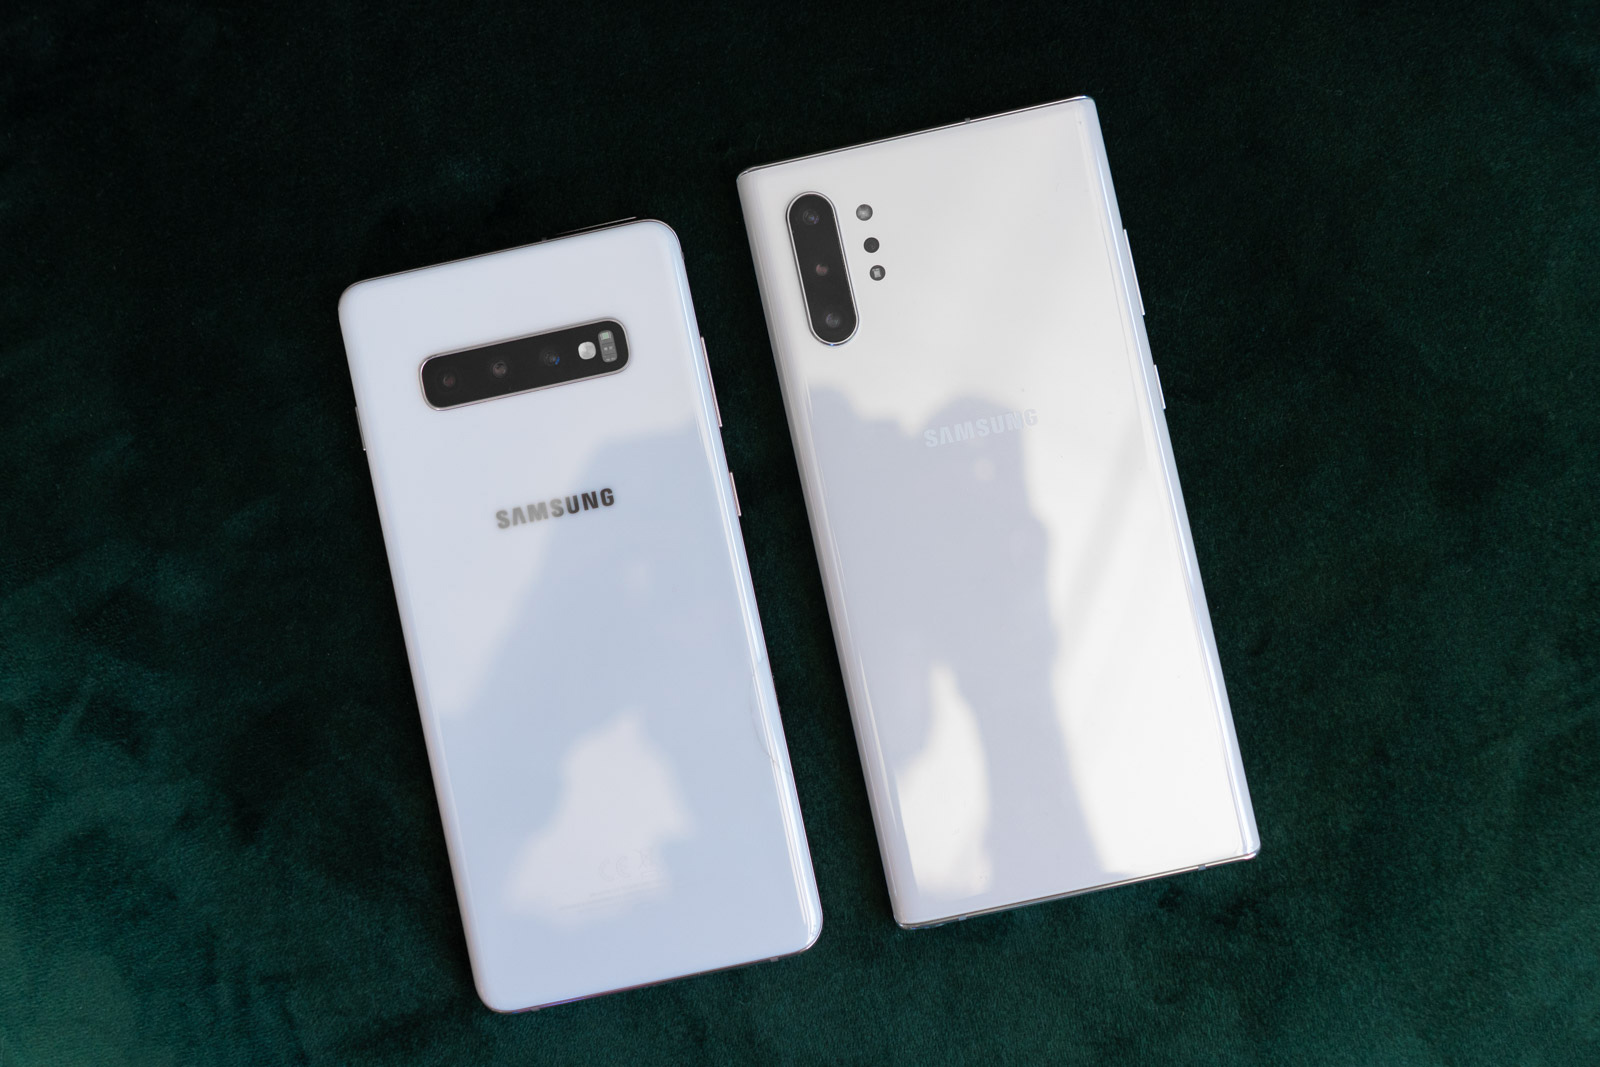 Samsung Galaxy S10 + and Note 10+. You can see a big change in the camera design.